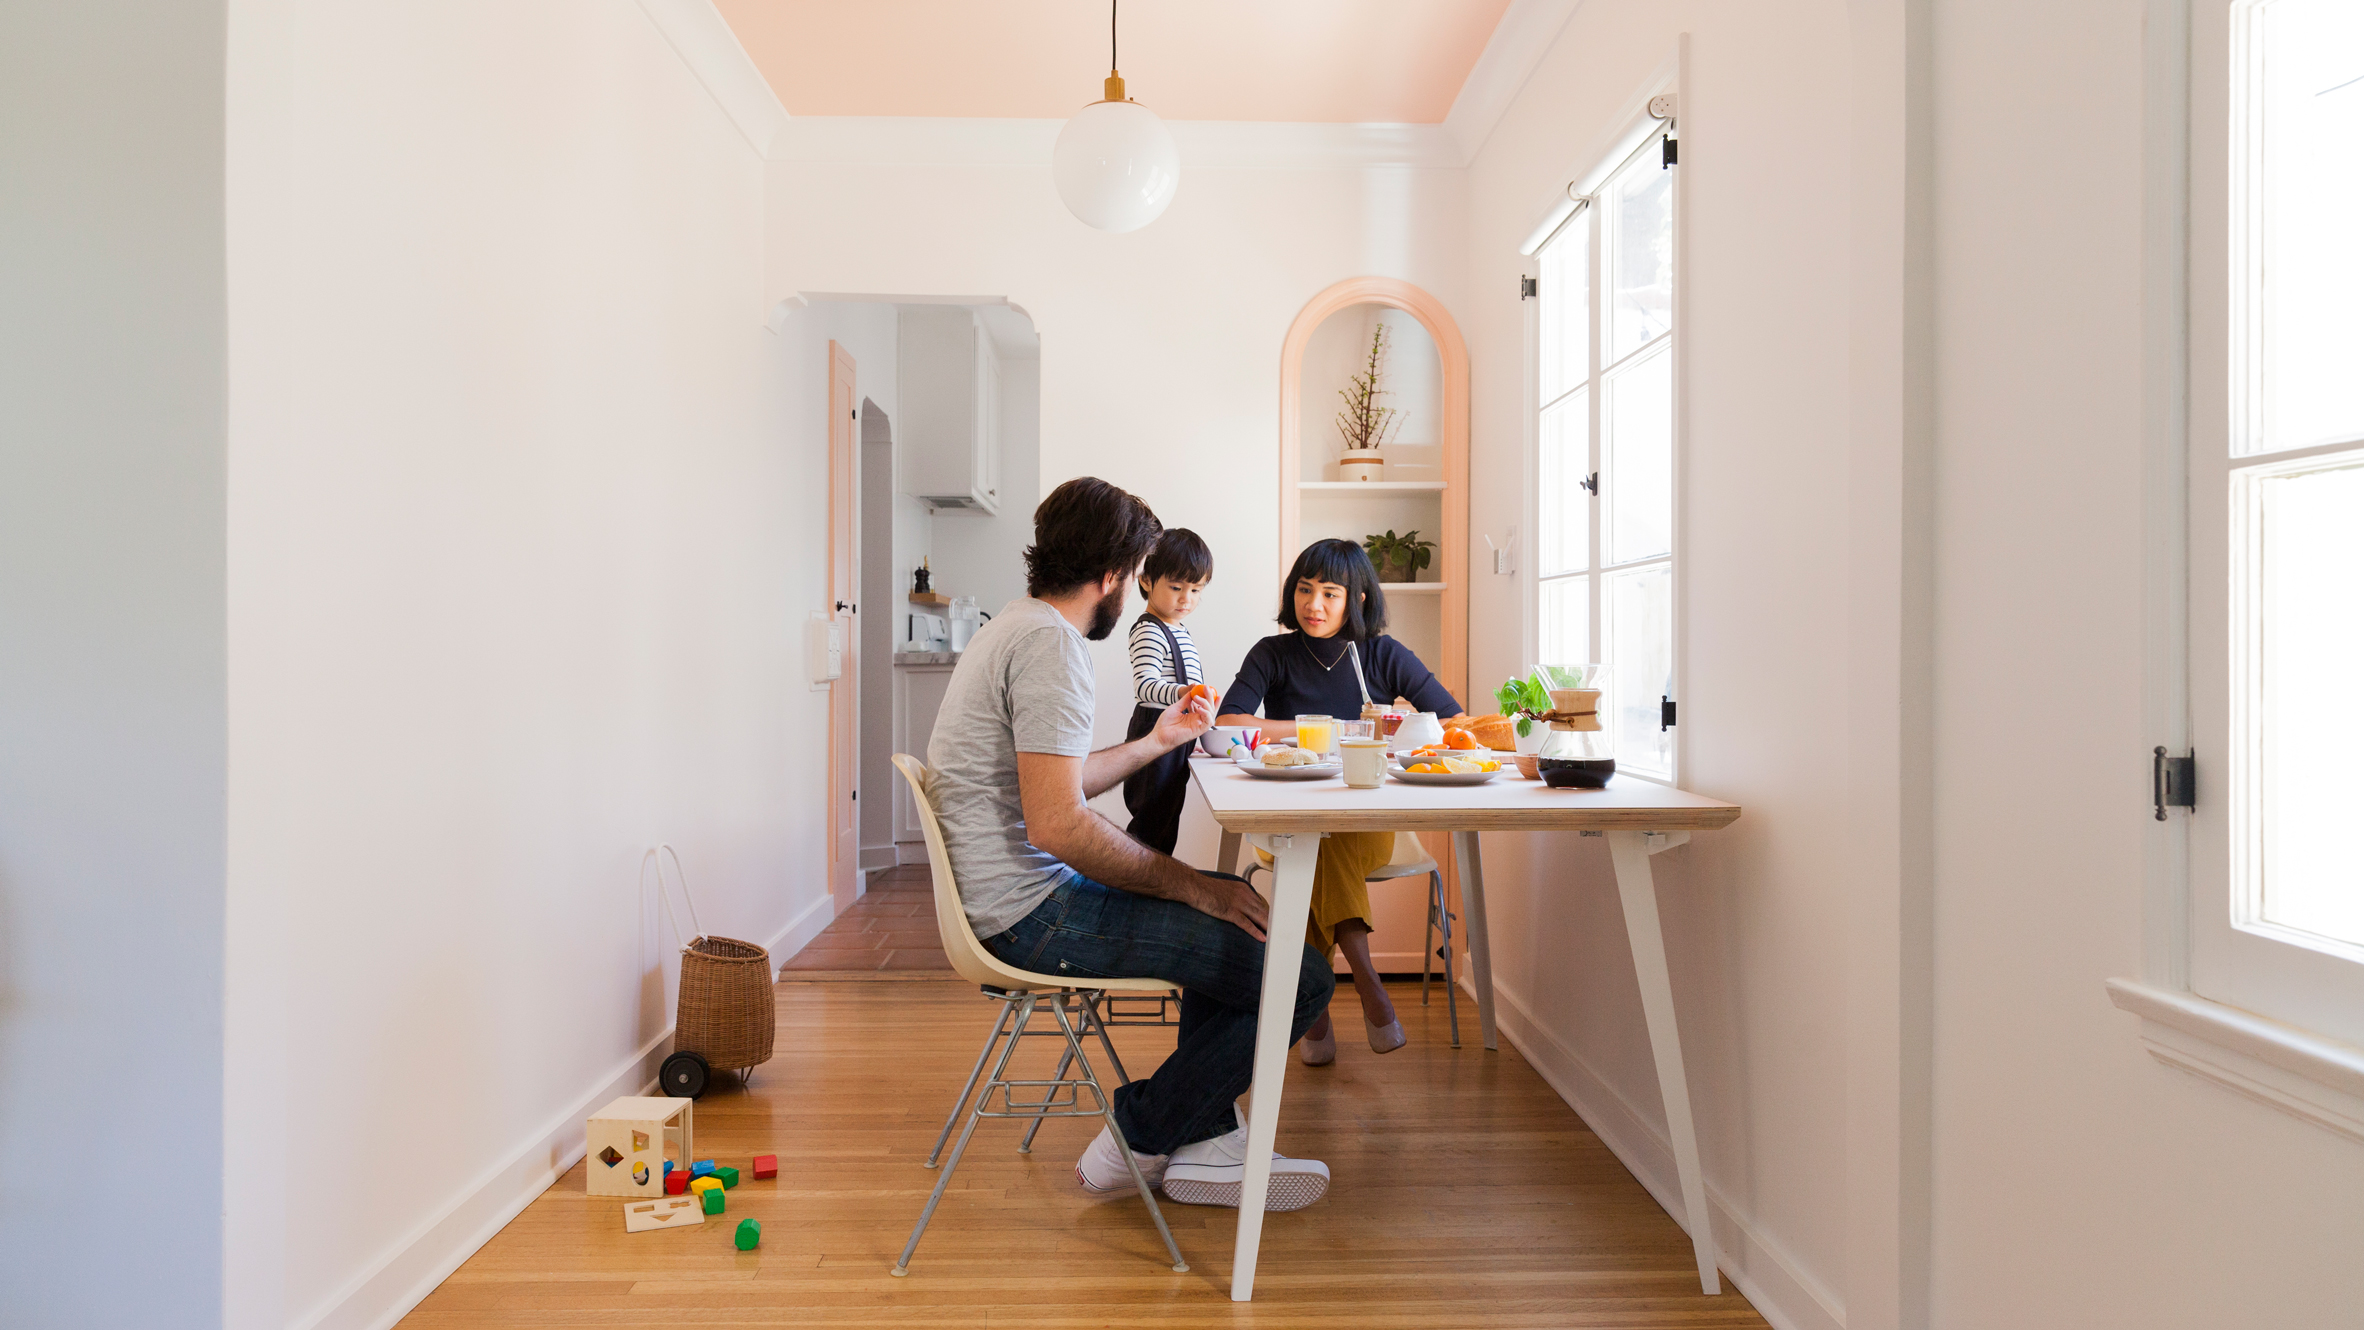 Sofa In A Box Companies Flat Pack Furniture Startup Floyd Produces Easy To Assemble Items